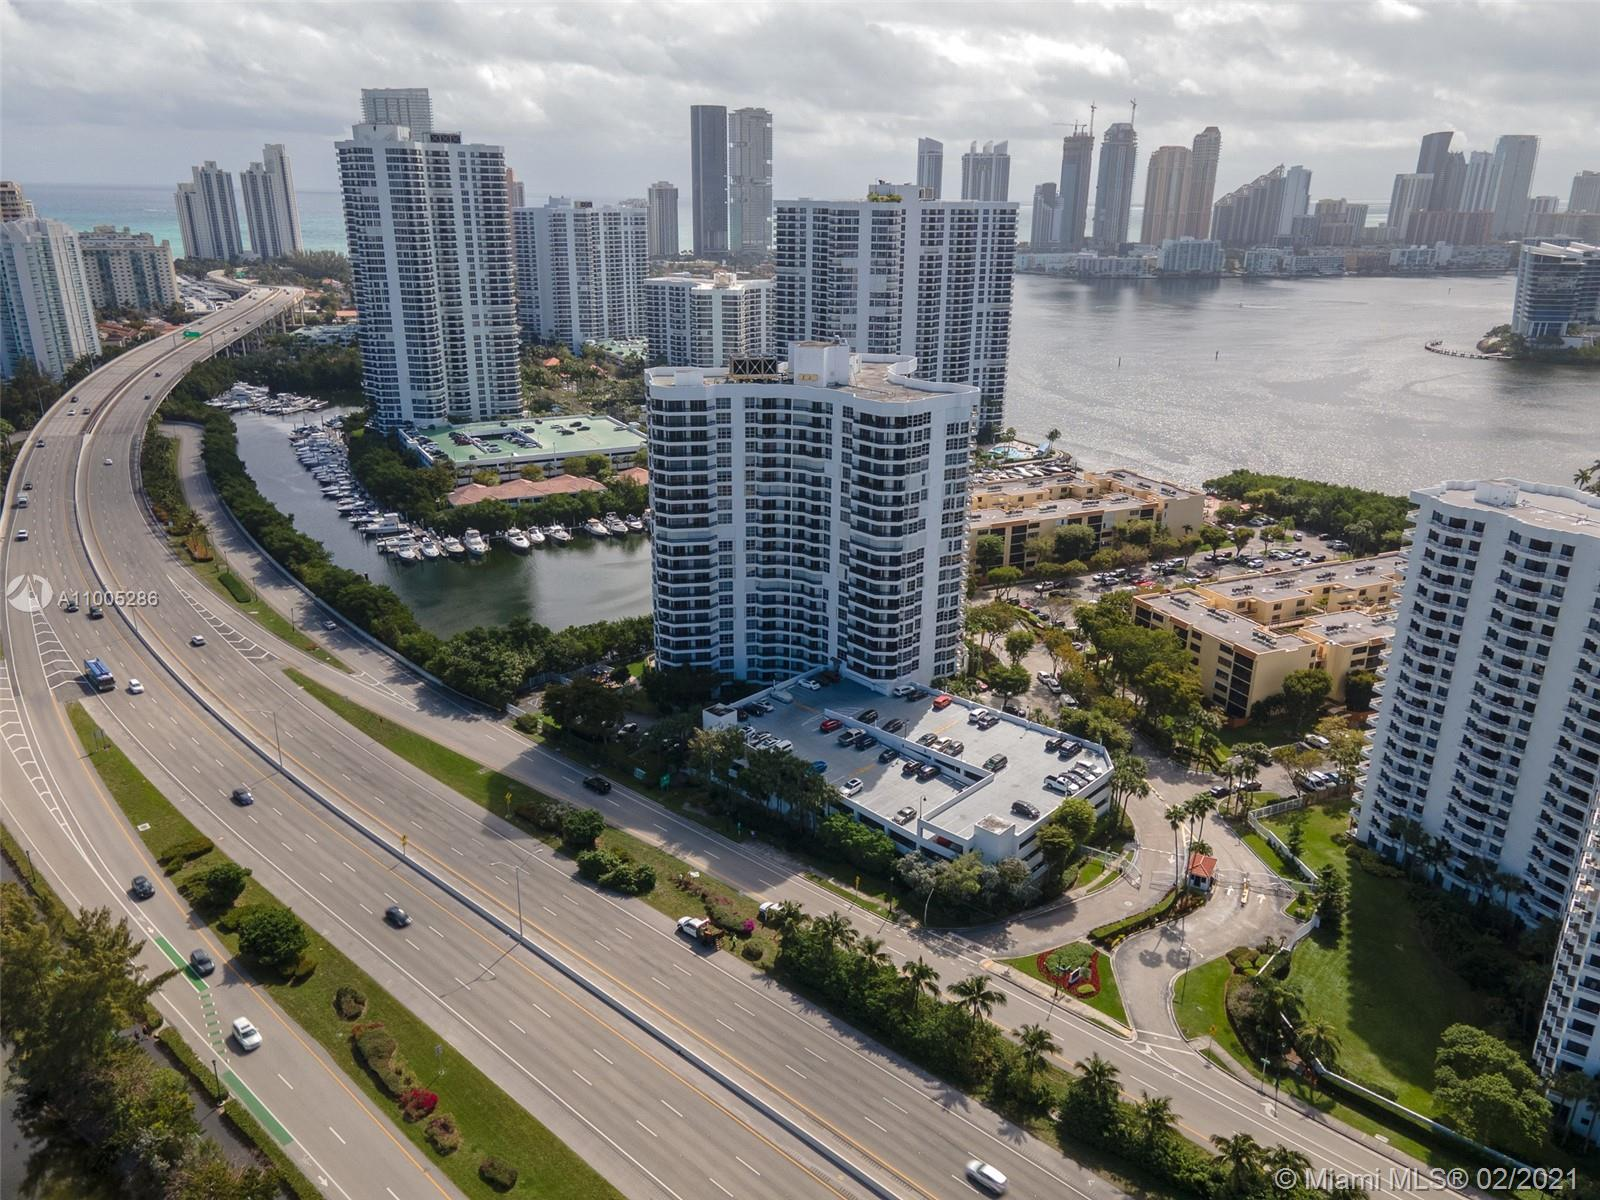 Mystic Pointe Tower 600 #1202 - 3400 NE 192nd St #1202, Aventura, FL 33180